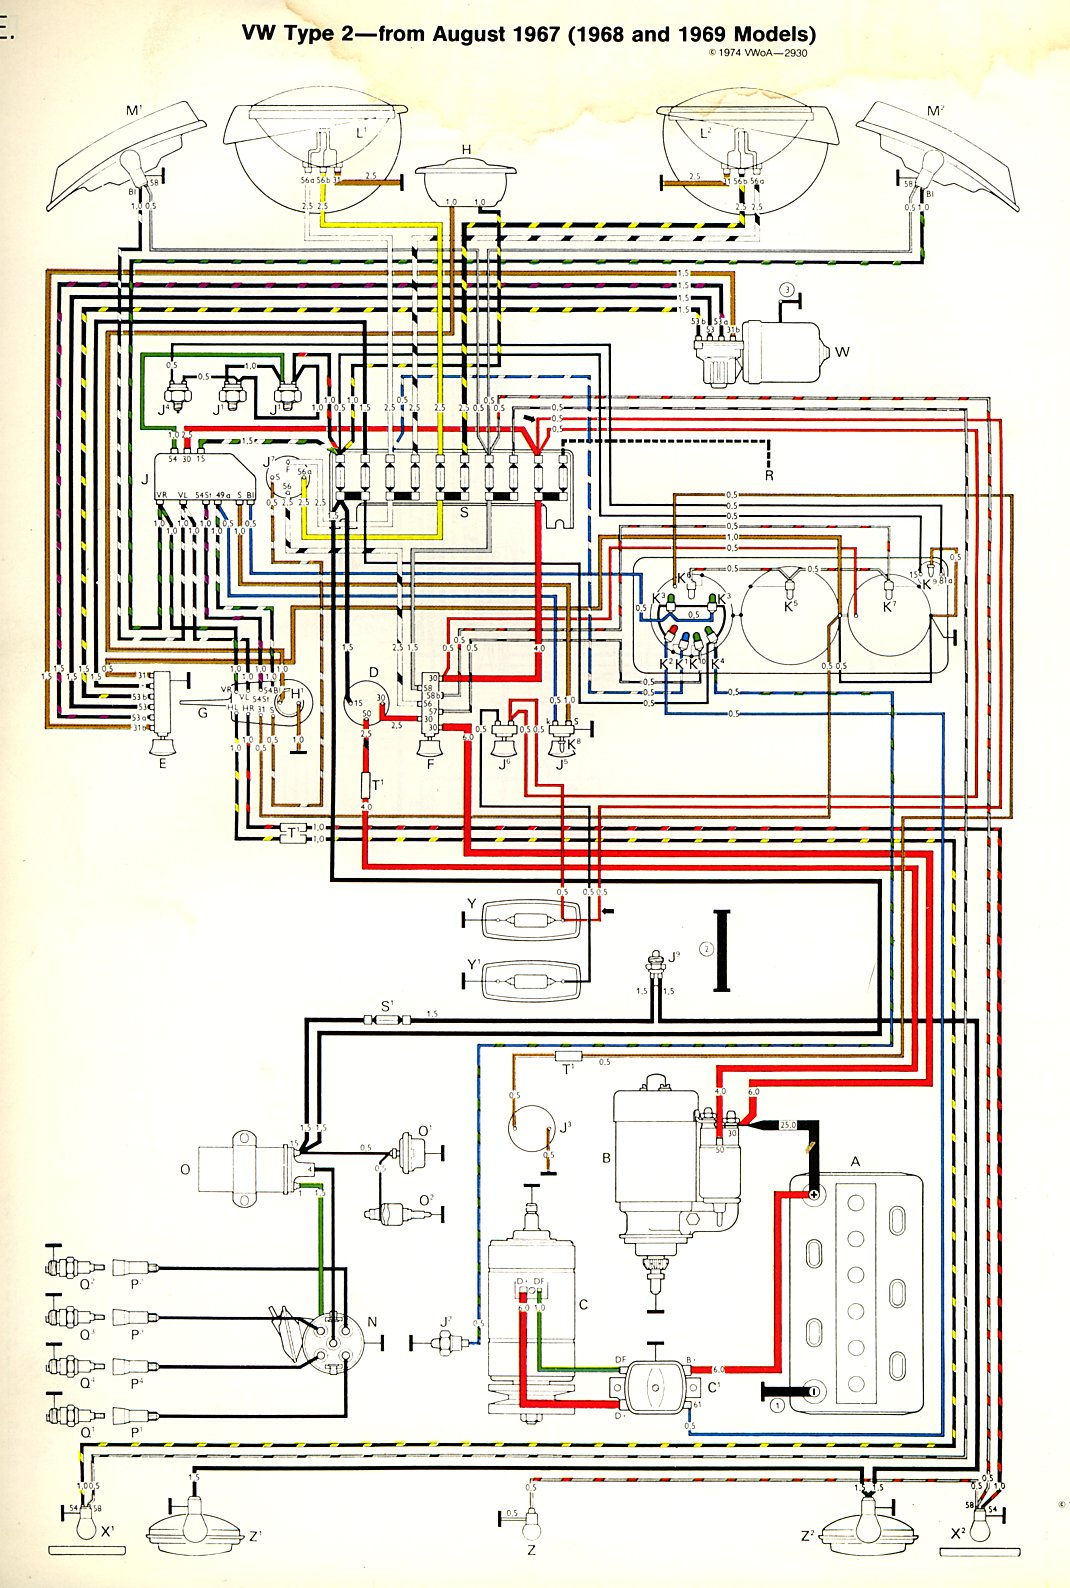 baybus_6869a thesamba com type 2 wiring diagrams  at soozxer.org